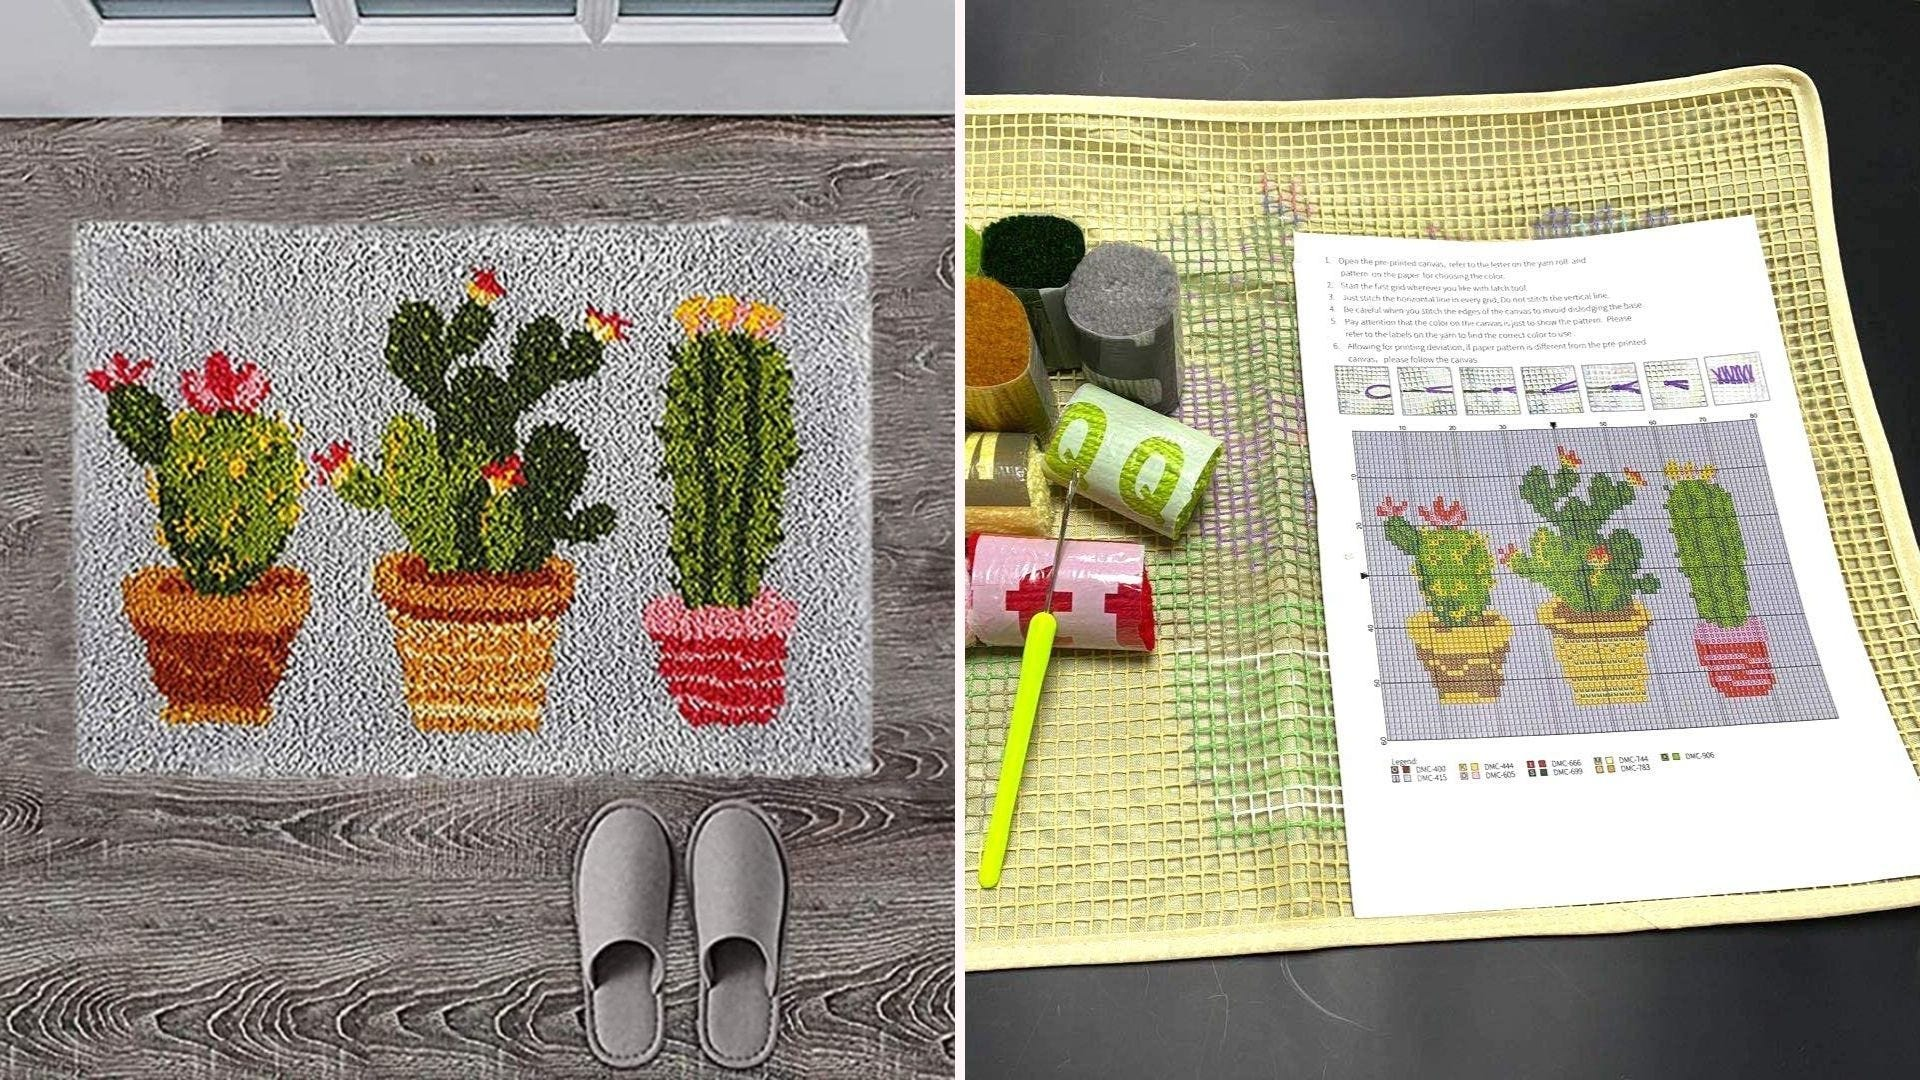 a cactus patterned rug in front of a door and the latch hook kit to create it